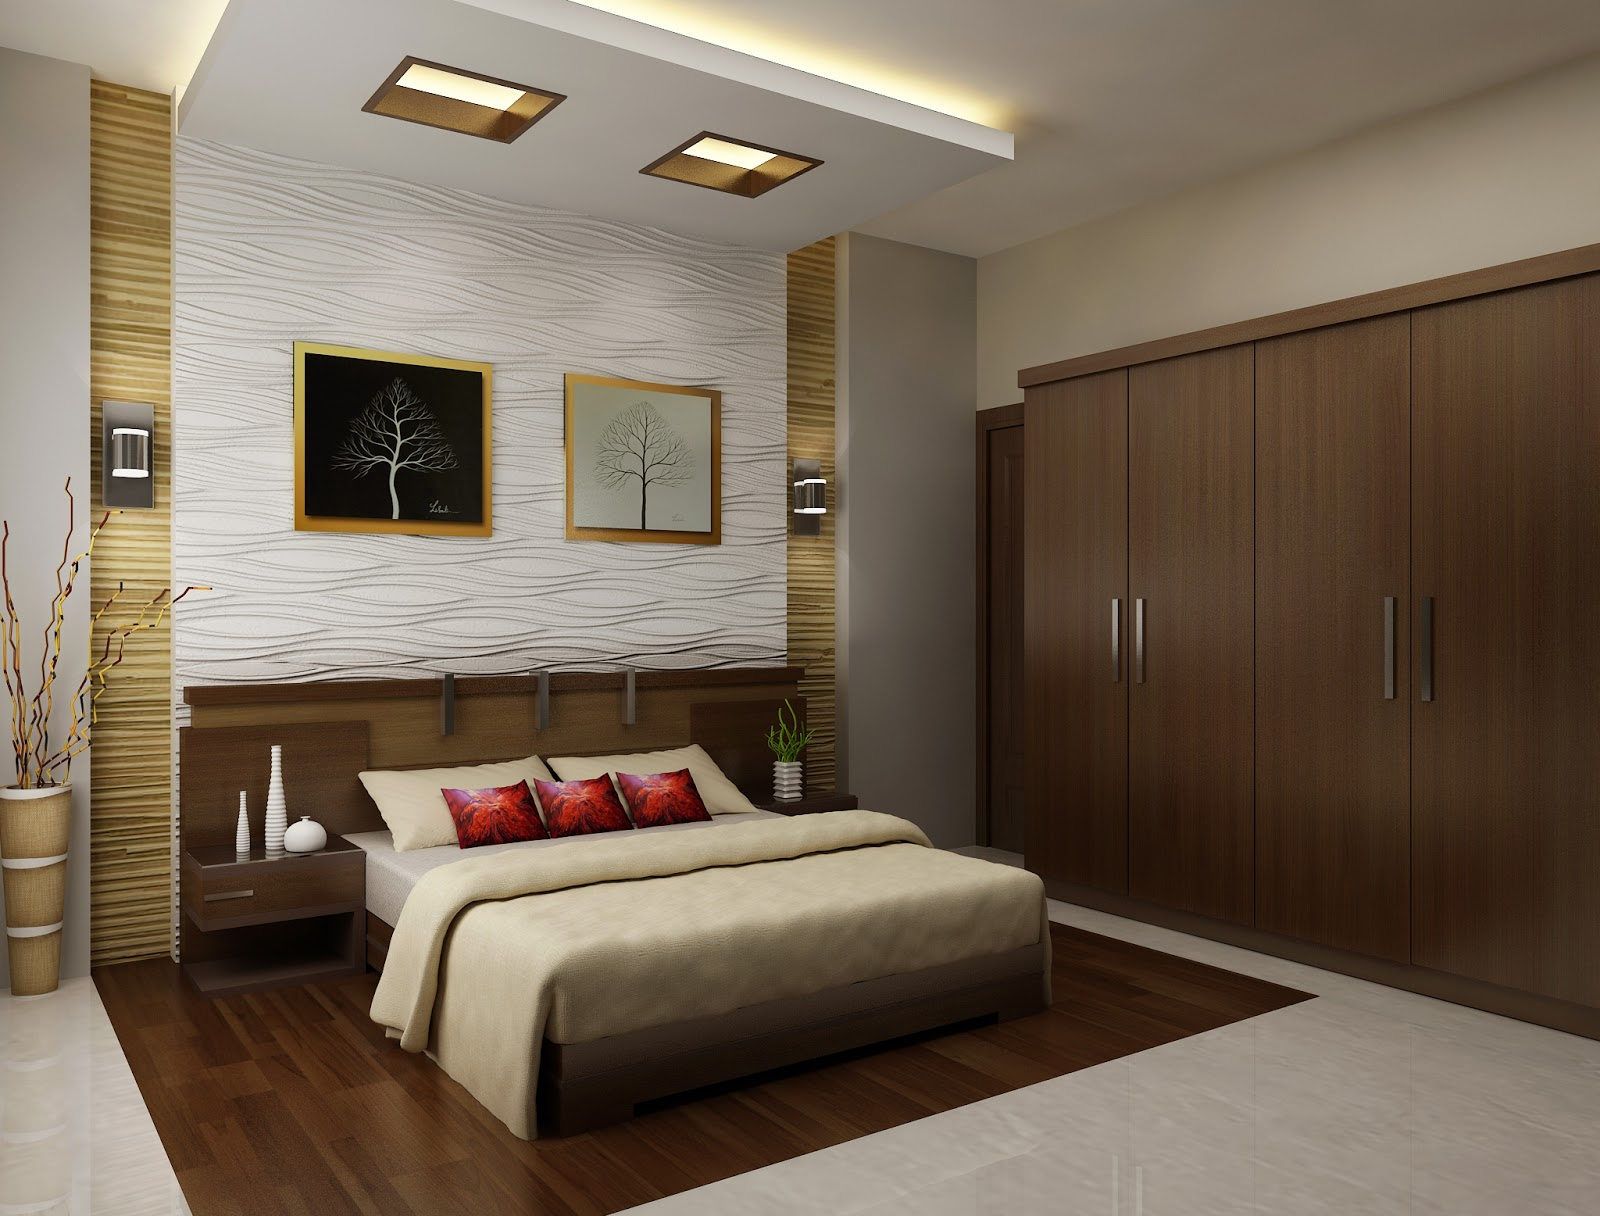 . Interior Bedroom Design   Dreams House